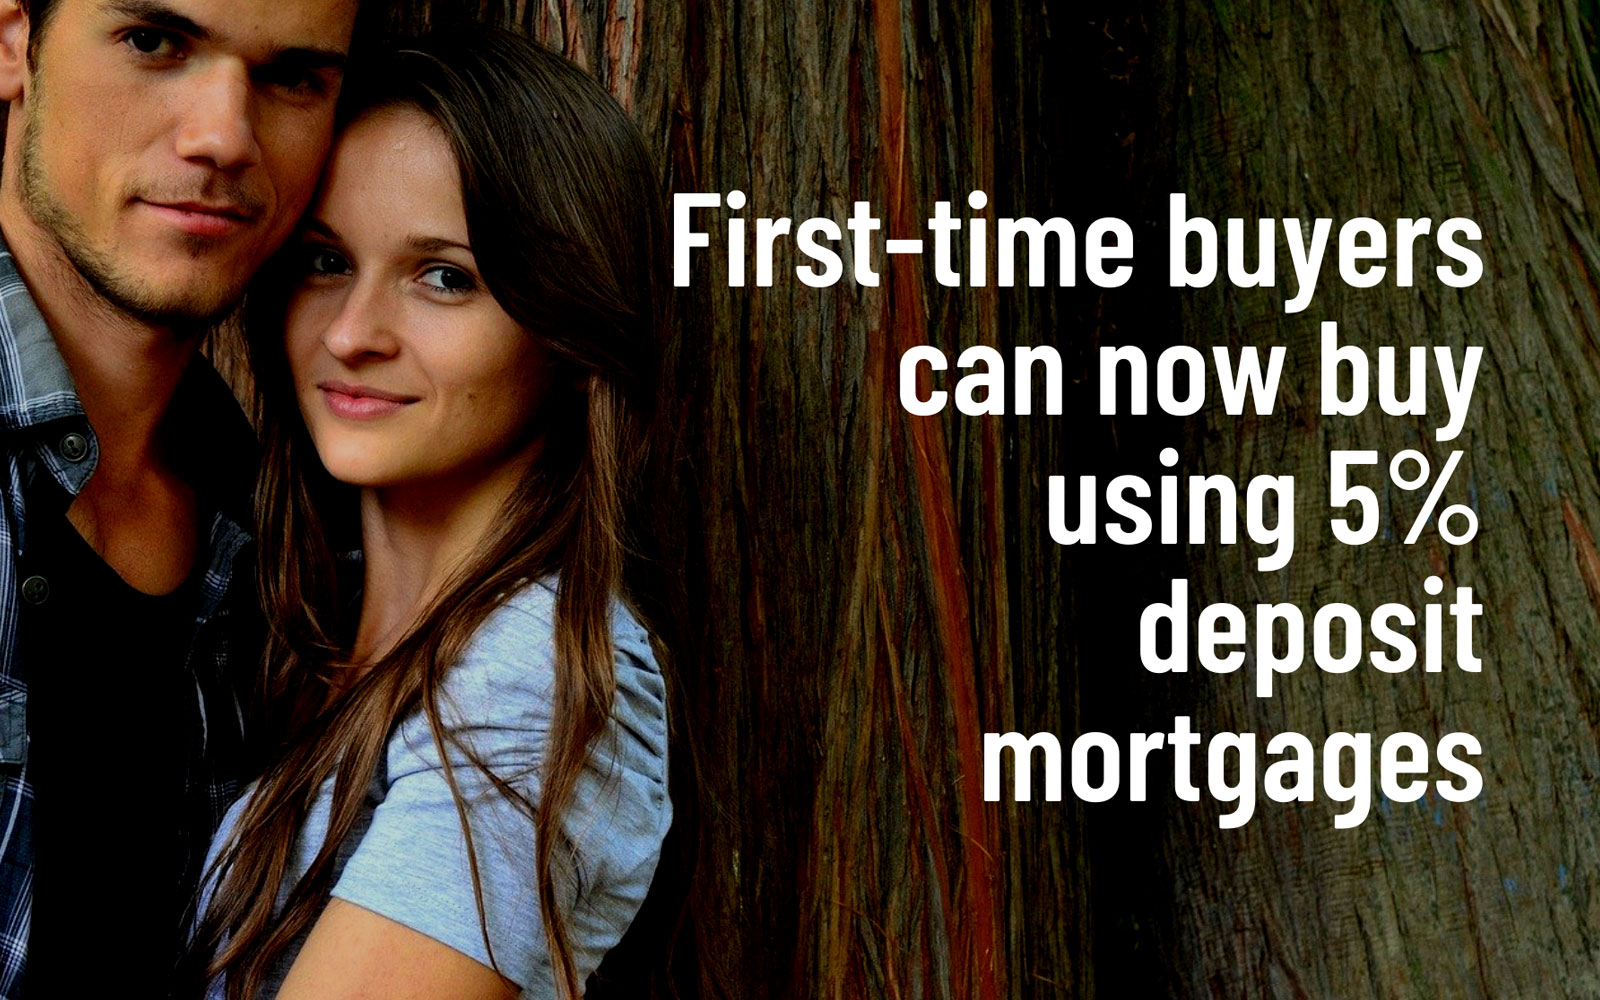 Matlock First-time Buyers Can Now Buy Using 5% Deposit Mortgages